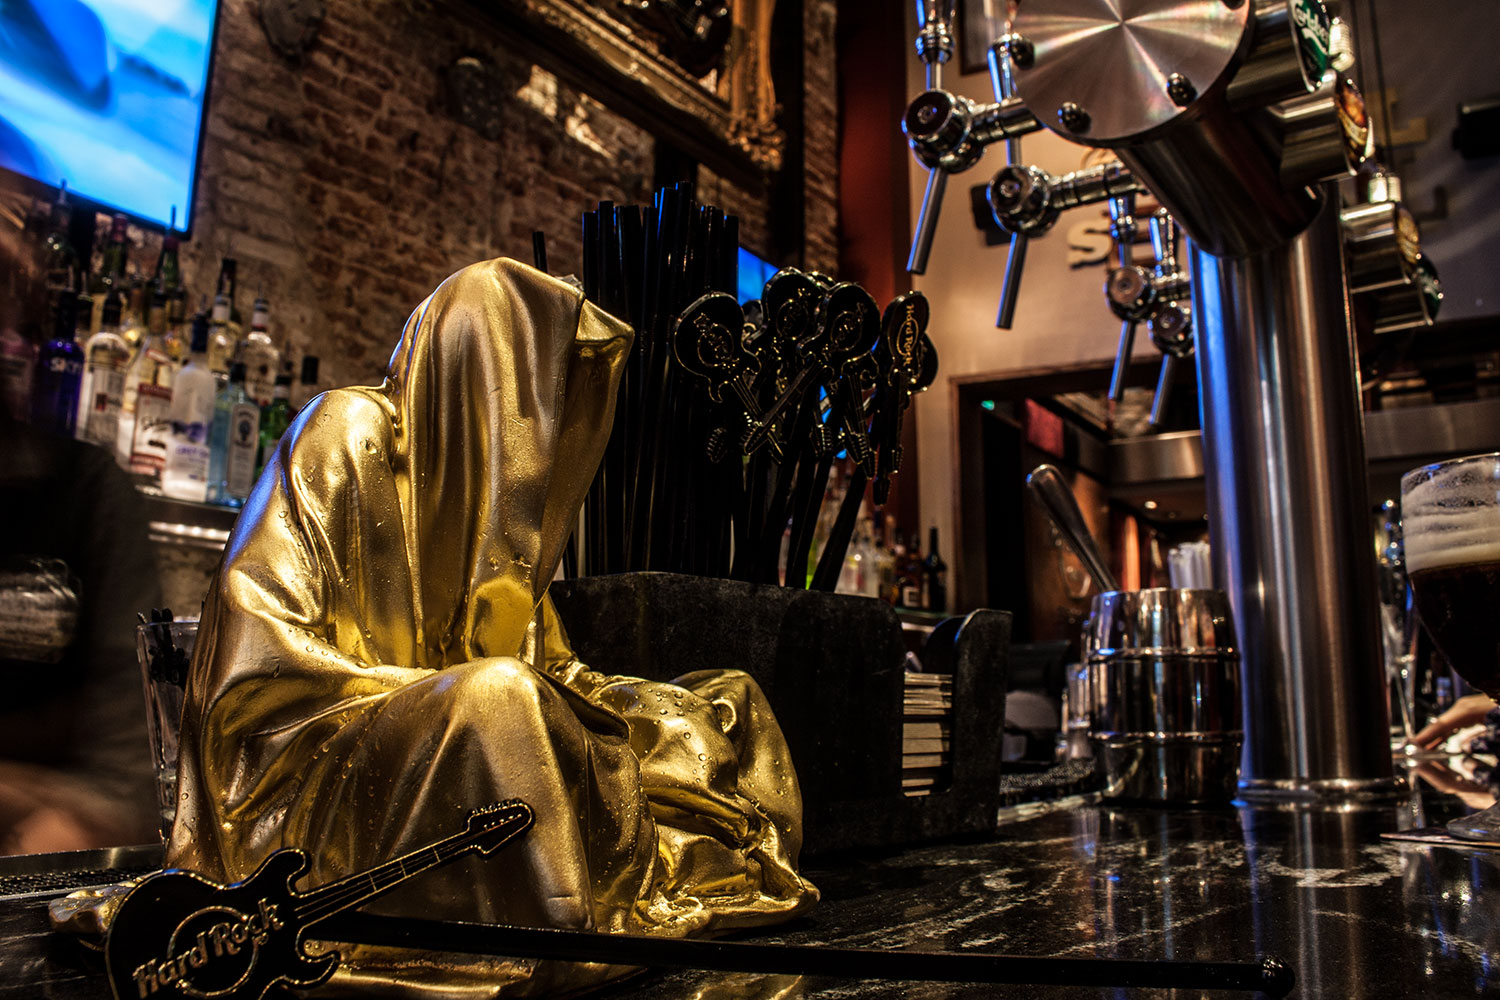 brussel-belgien-guardians-of-time-manfred-kielnhofer-public-modern-contemporary-art-fine-arts-sculpture-design-streat-art-hard-rock-cafe-1852